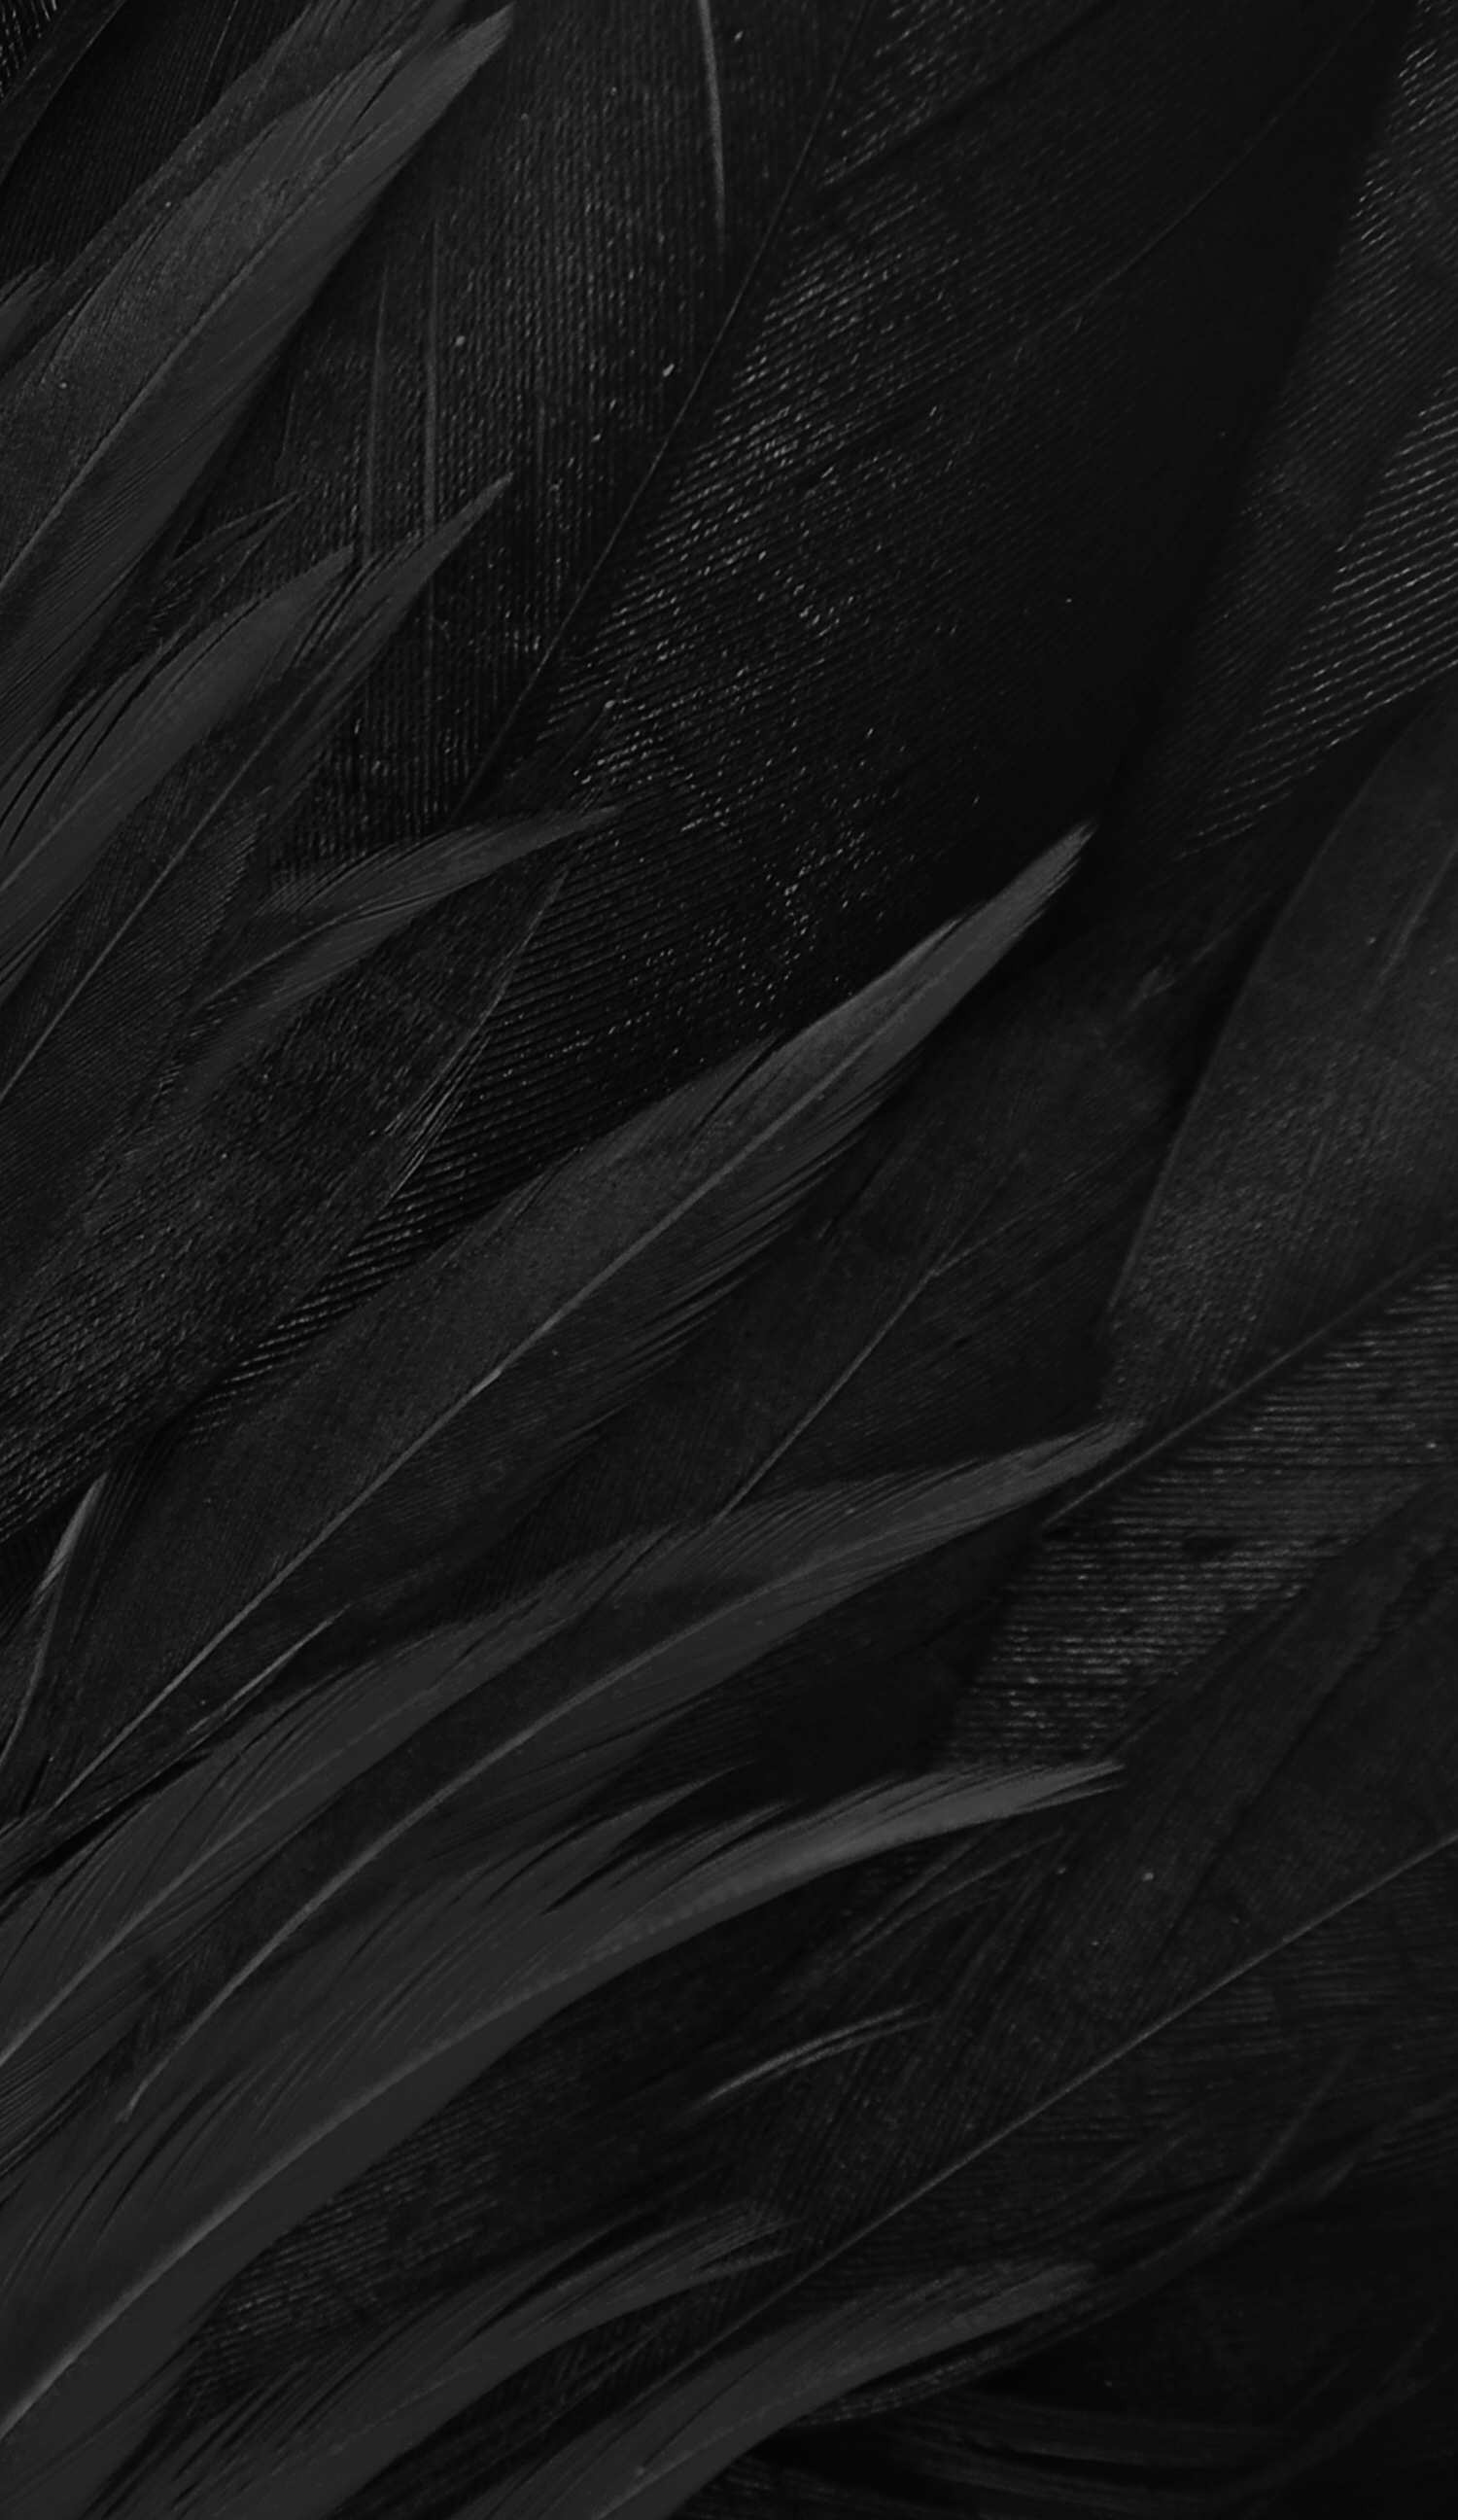 Pin By Maria Federico On Black Matte Black Background Black Wallpaper Black Feathers